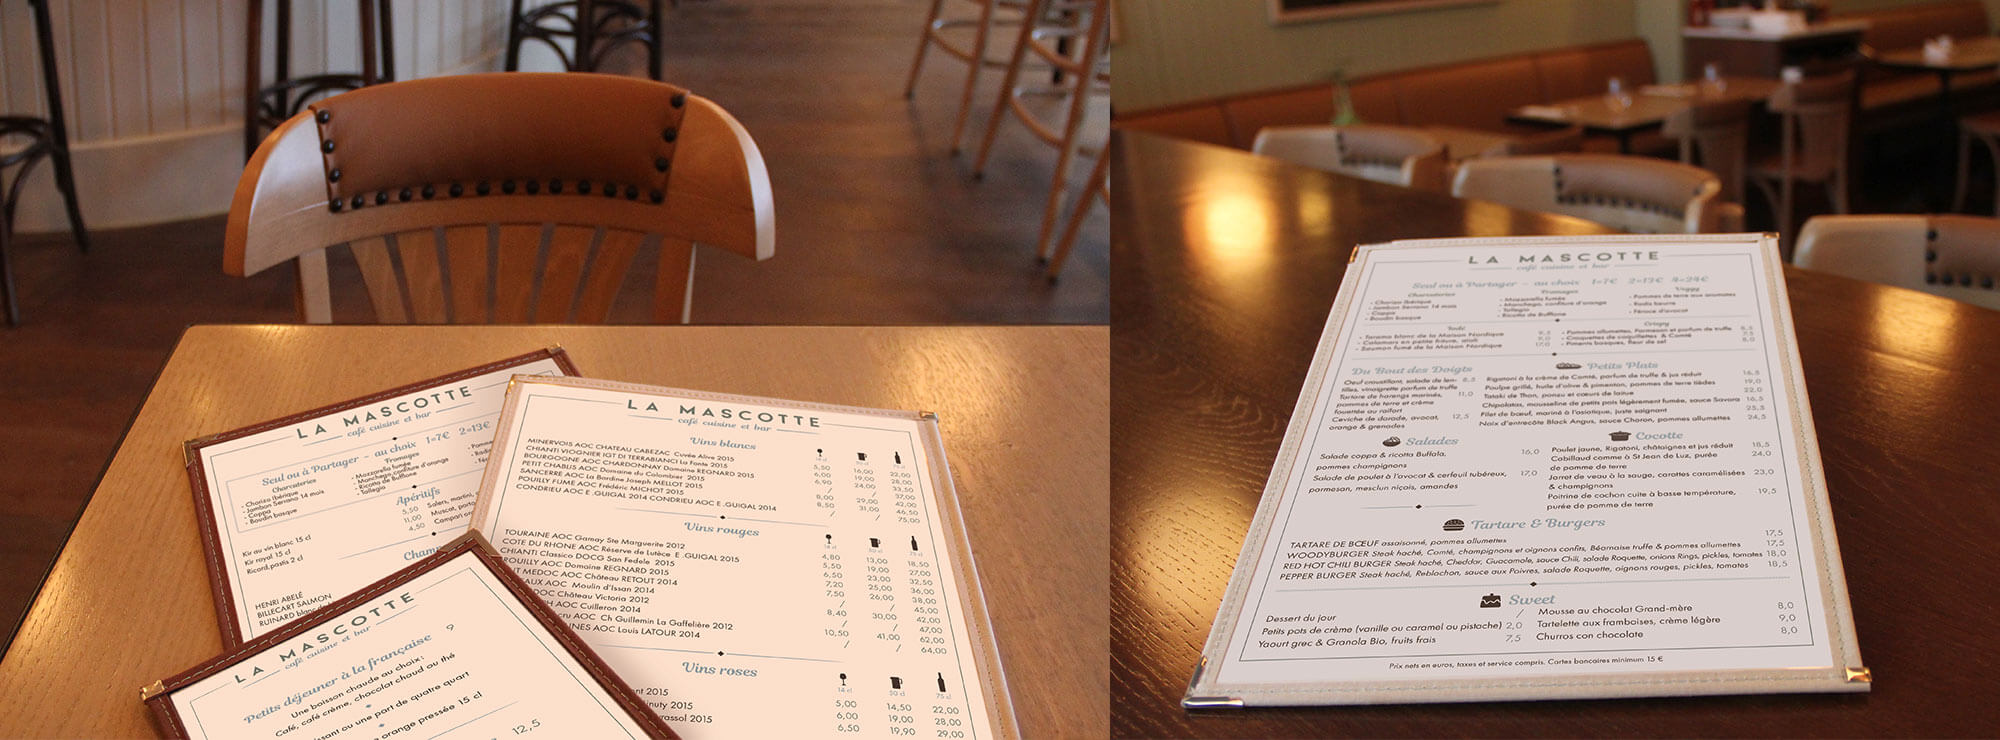 05.lamascotte menu pictogramme logo cafe bar restaurant.jpg